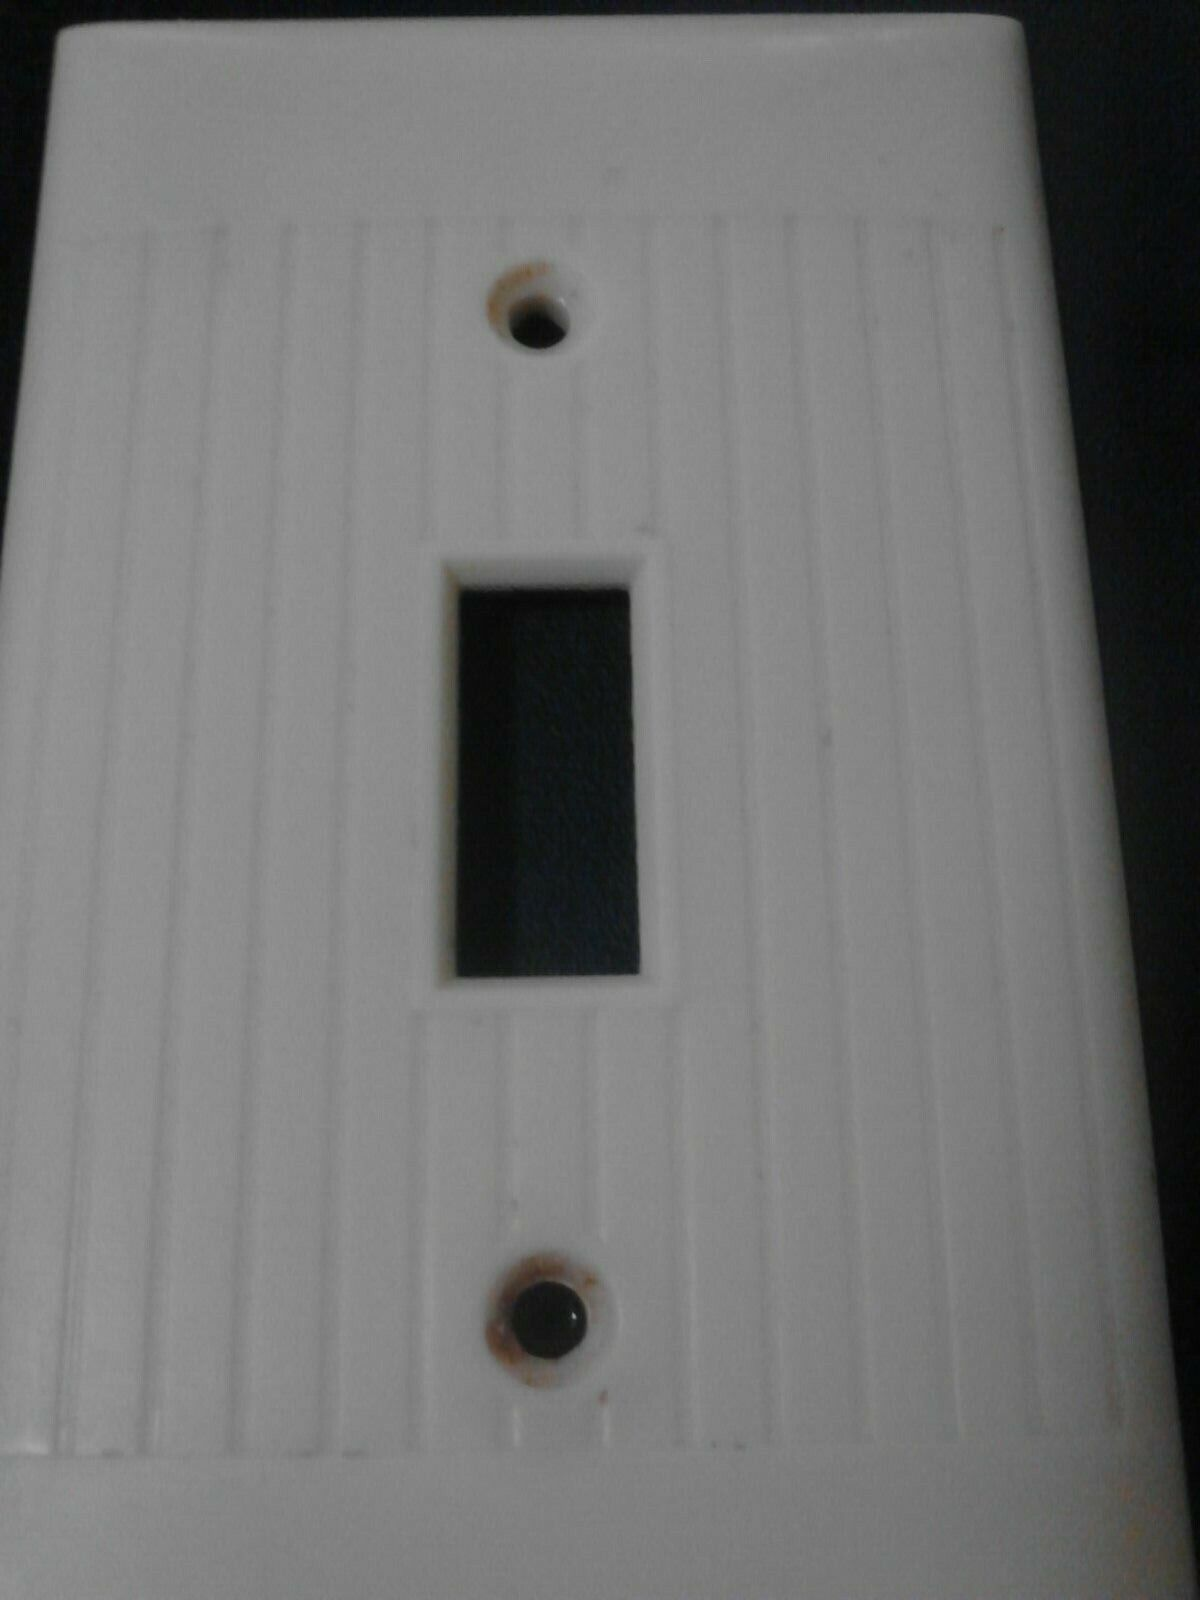 Single LIGHT SWITCH TOGGLE Wall Cover Plate IVORY RIBBED SIERRA ELECTRIC USED - $0.99